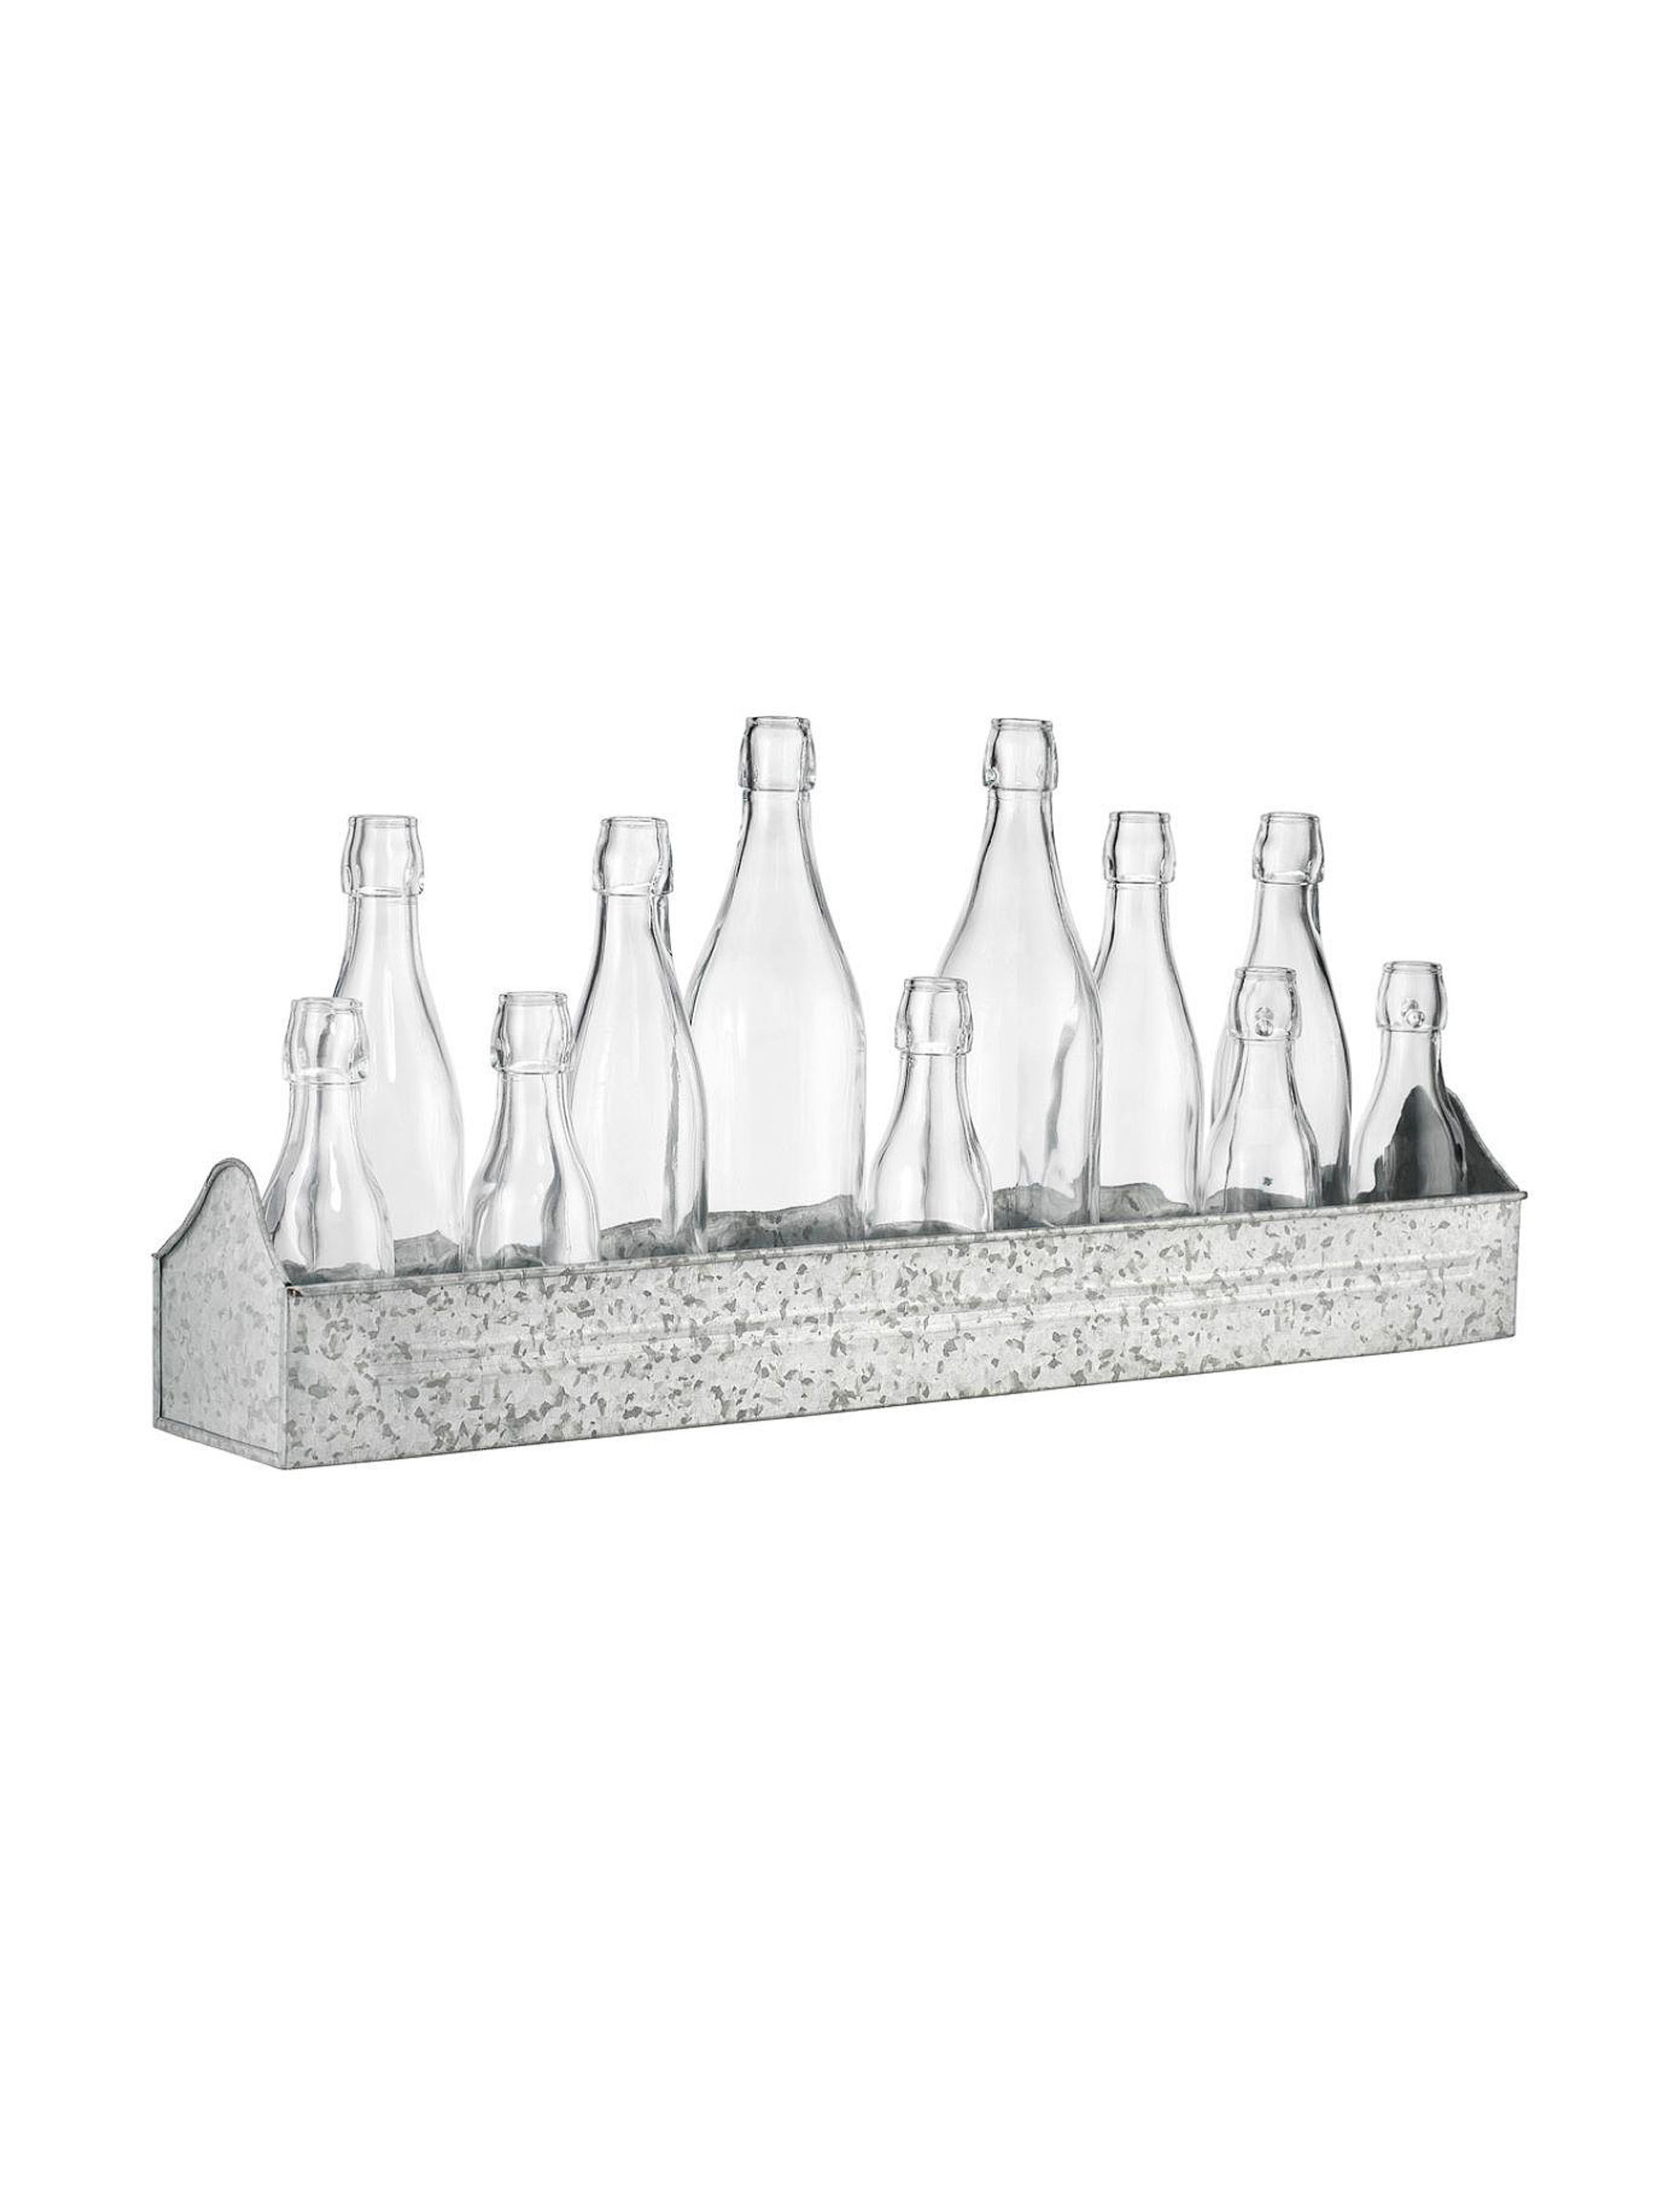 Home Essentials Silver / Clear Decorative Objects Home Accents